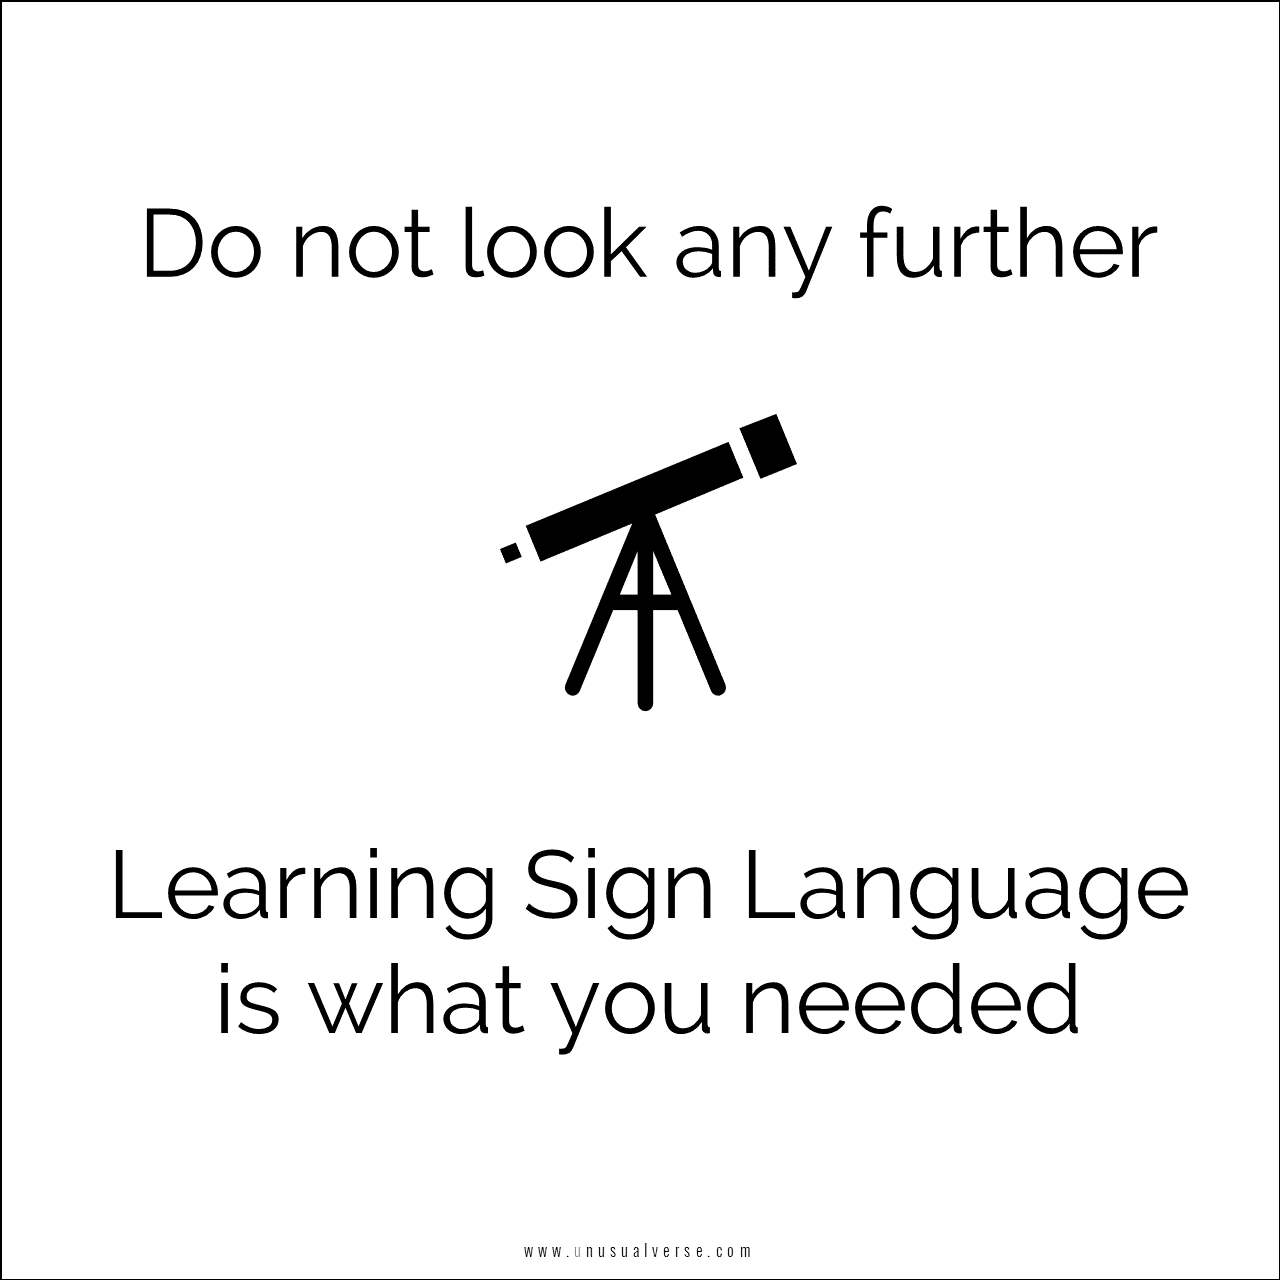 Do not look any further. Learning Sign Language is what you needed